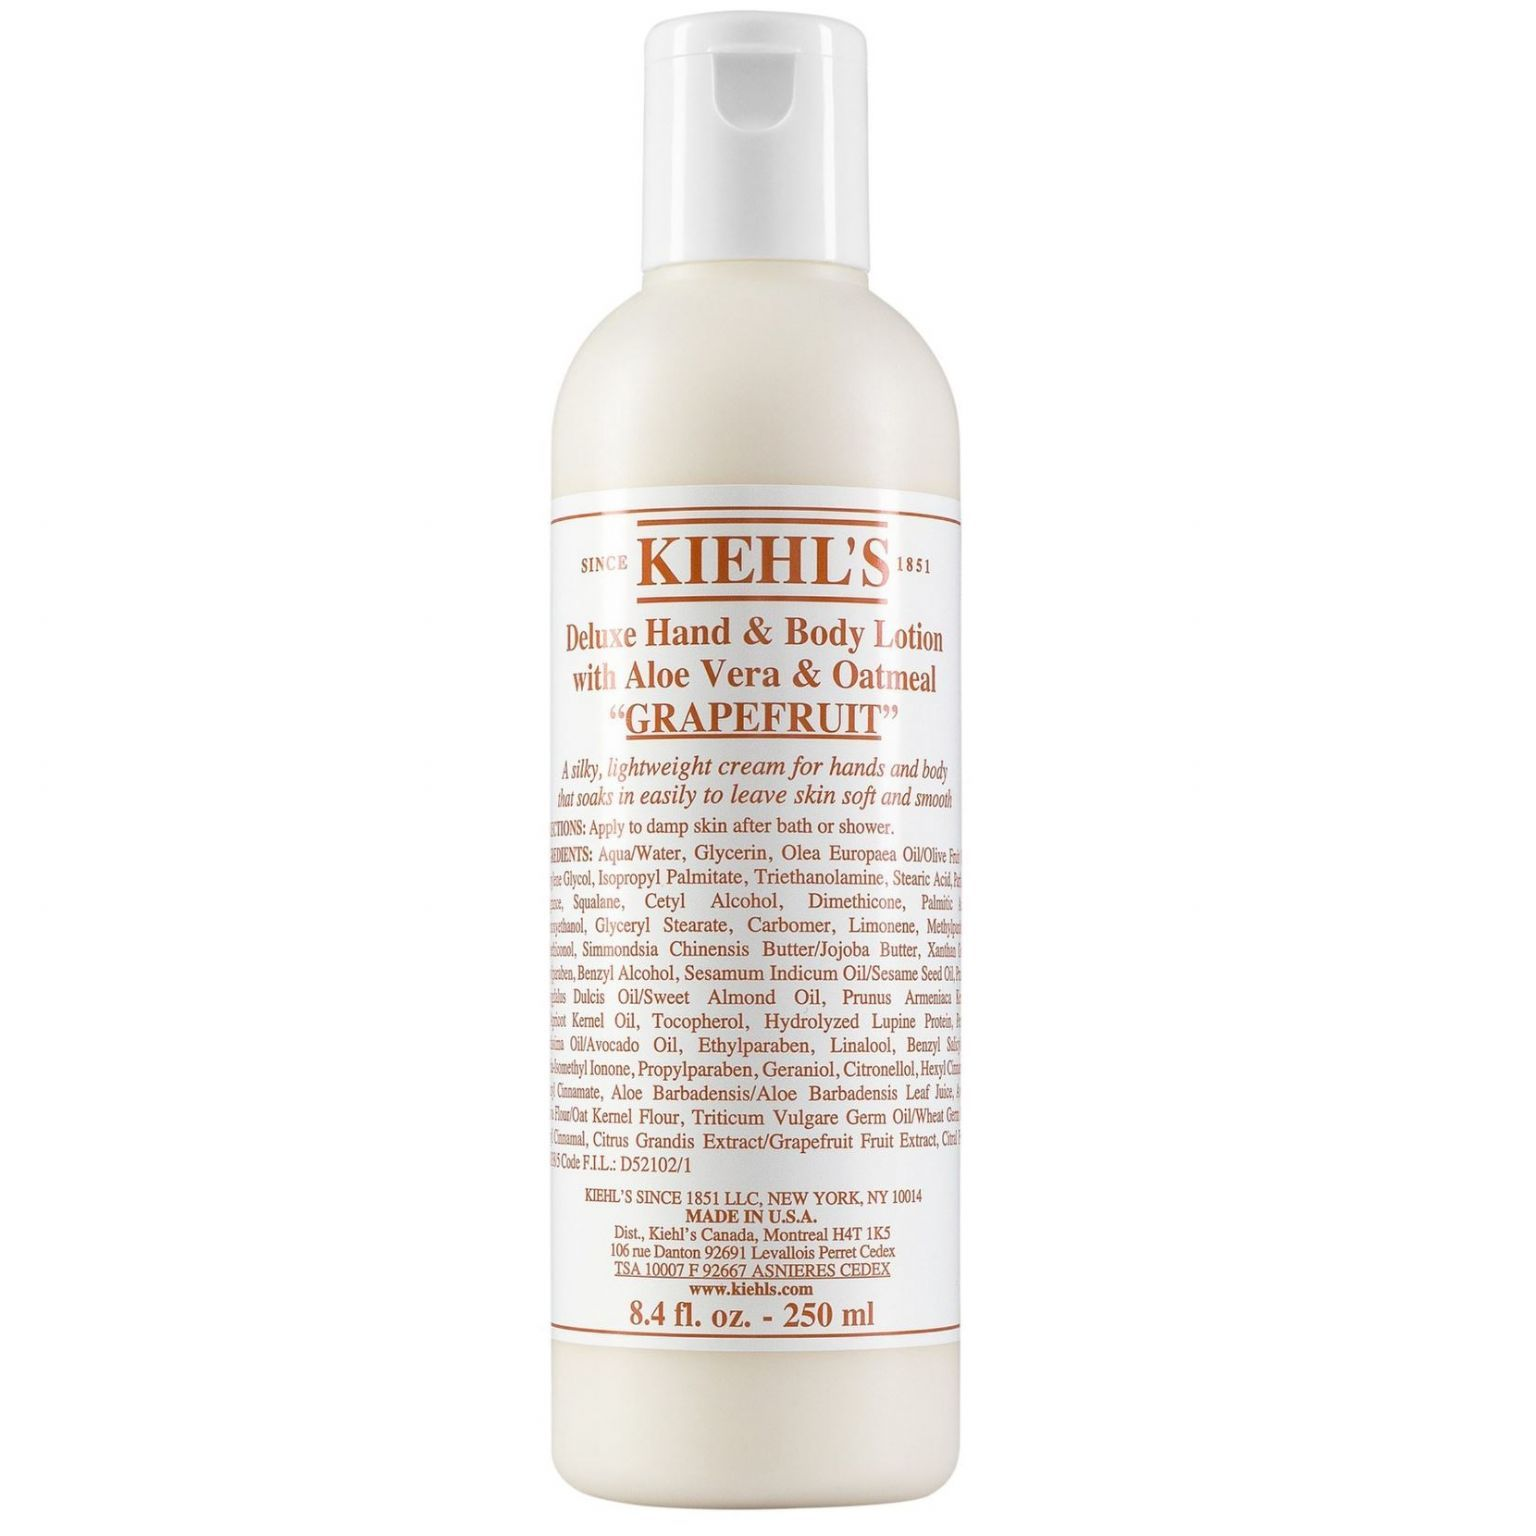 Grapefruit Deluxe Hand & Body Lotion with Aloe Vera & Oatmeal